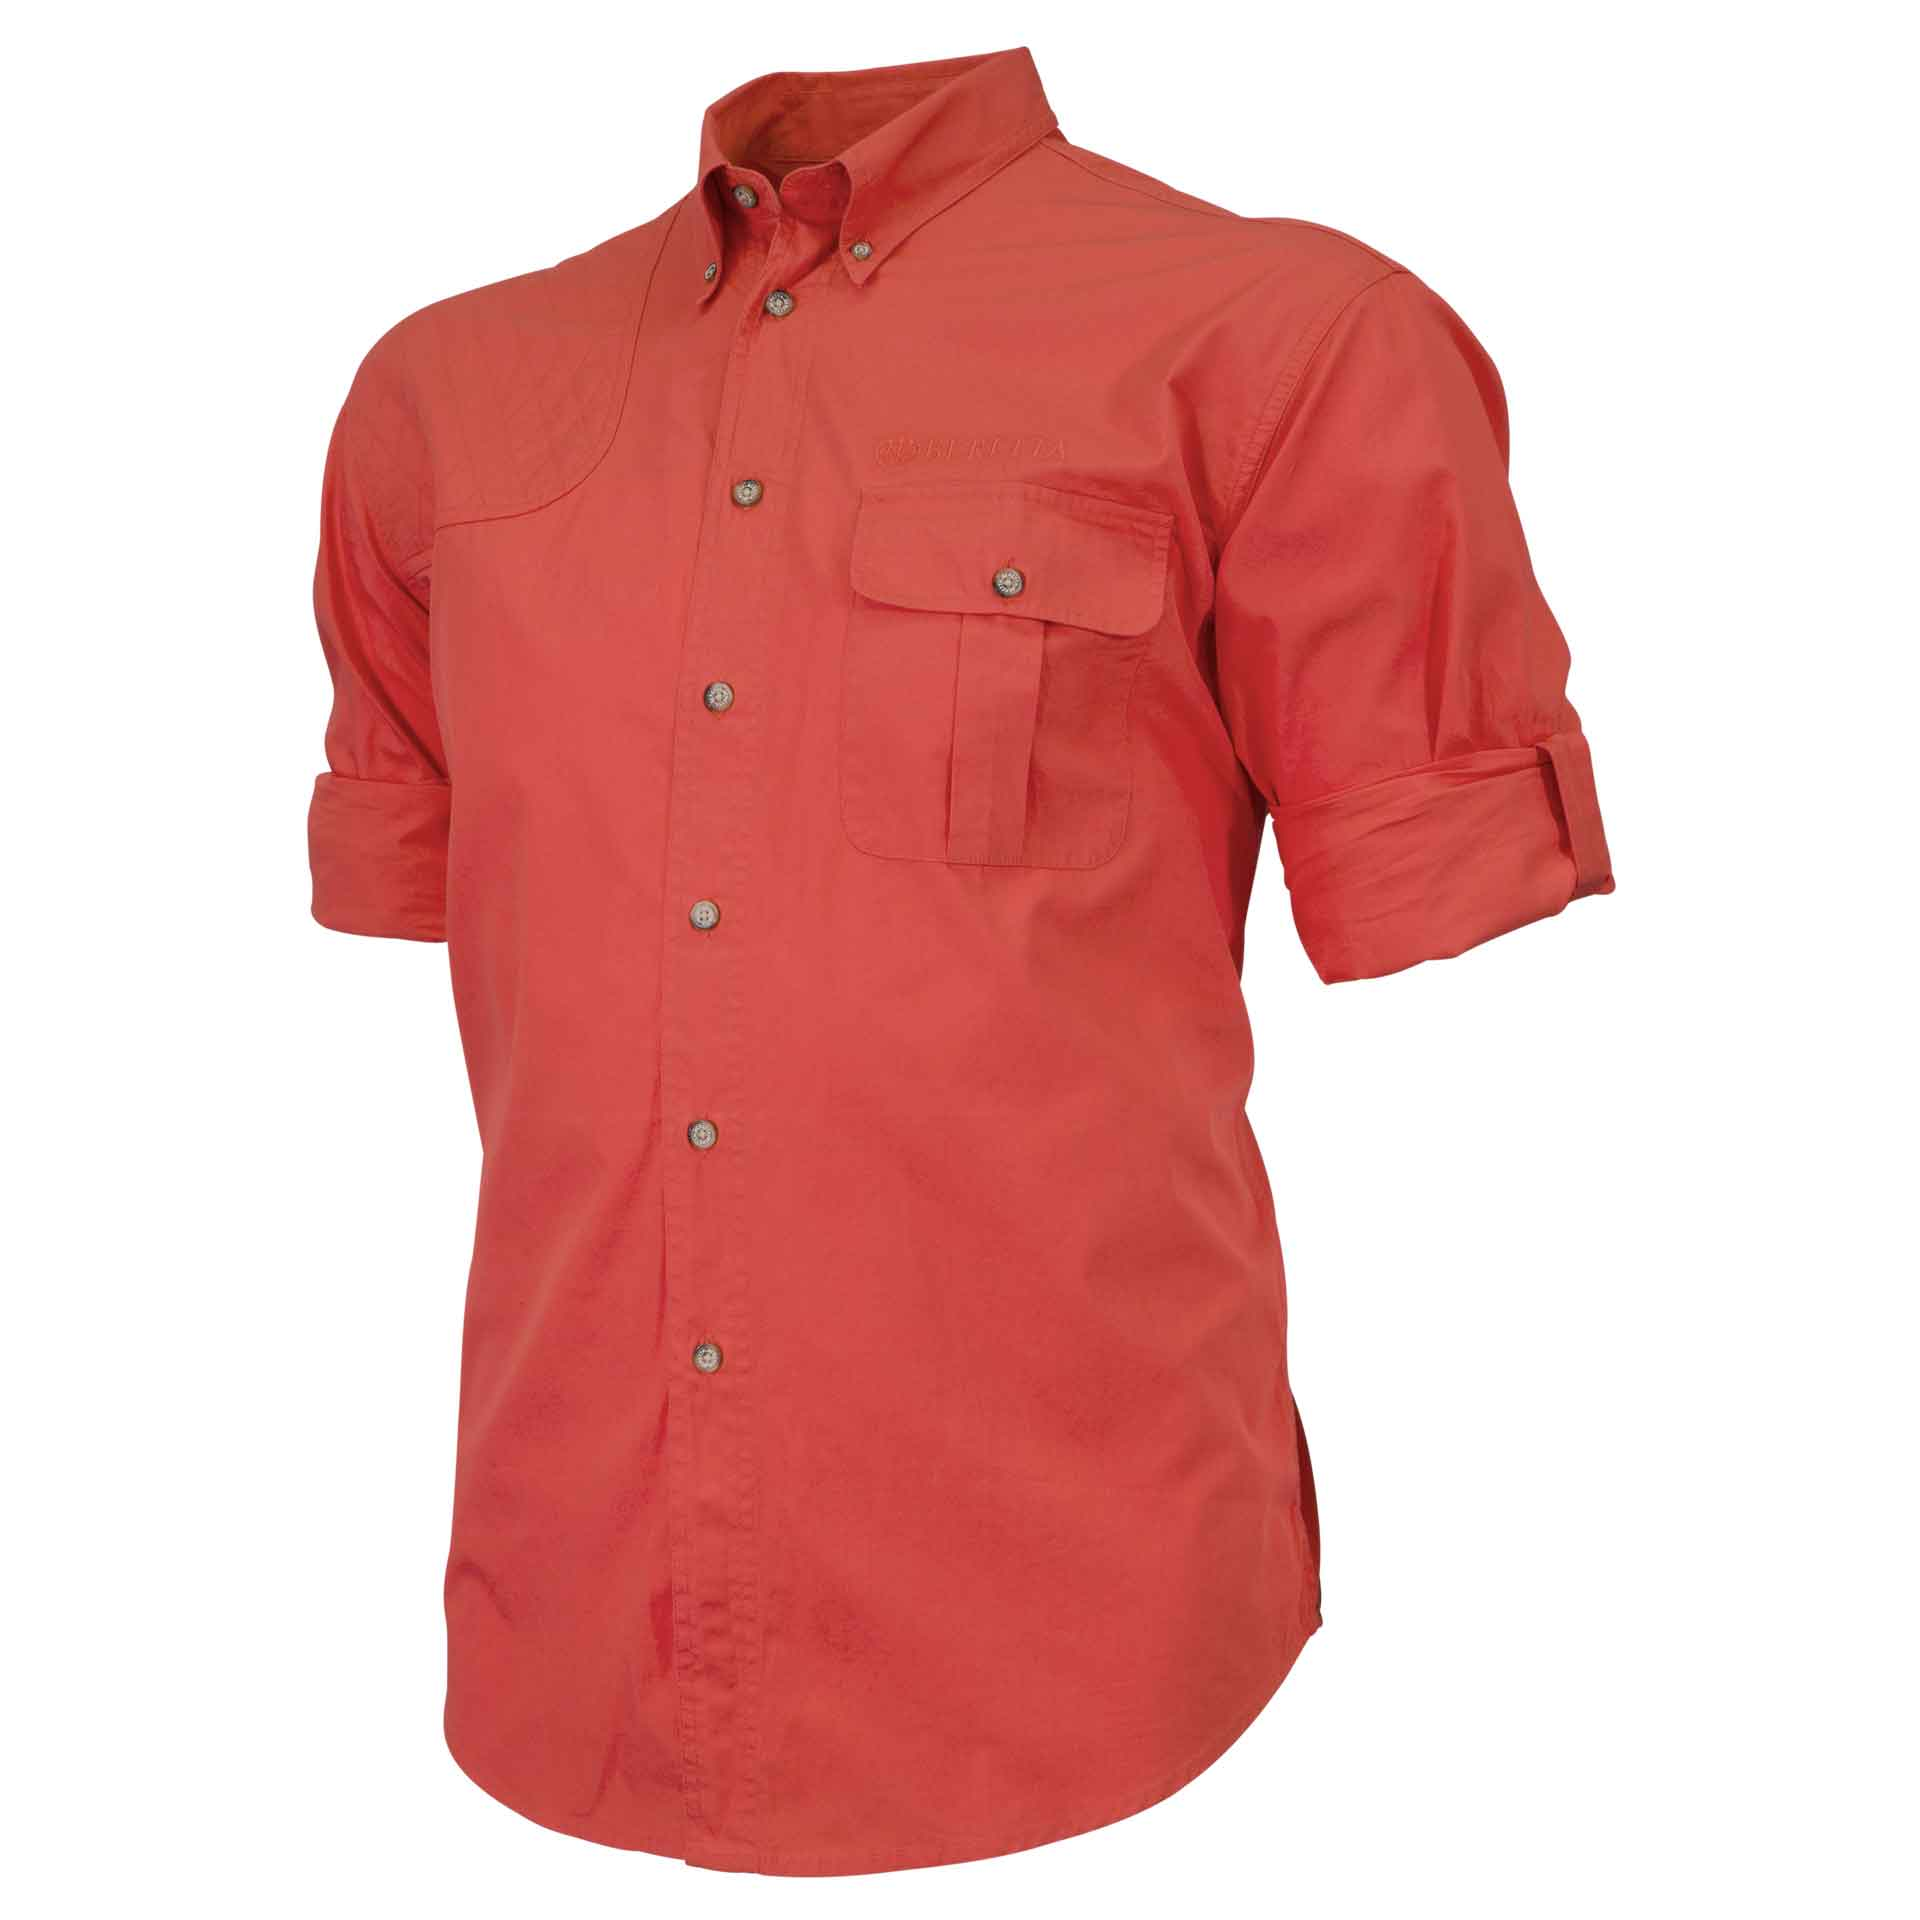 Beretta TM Roll Up Shirt